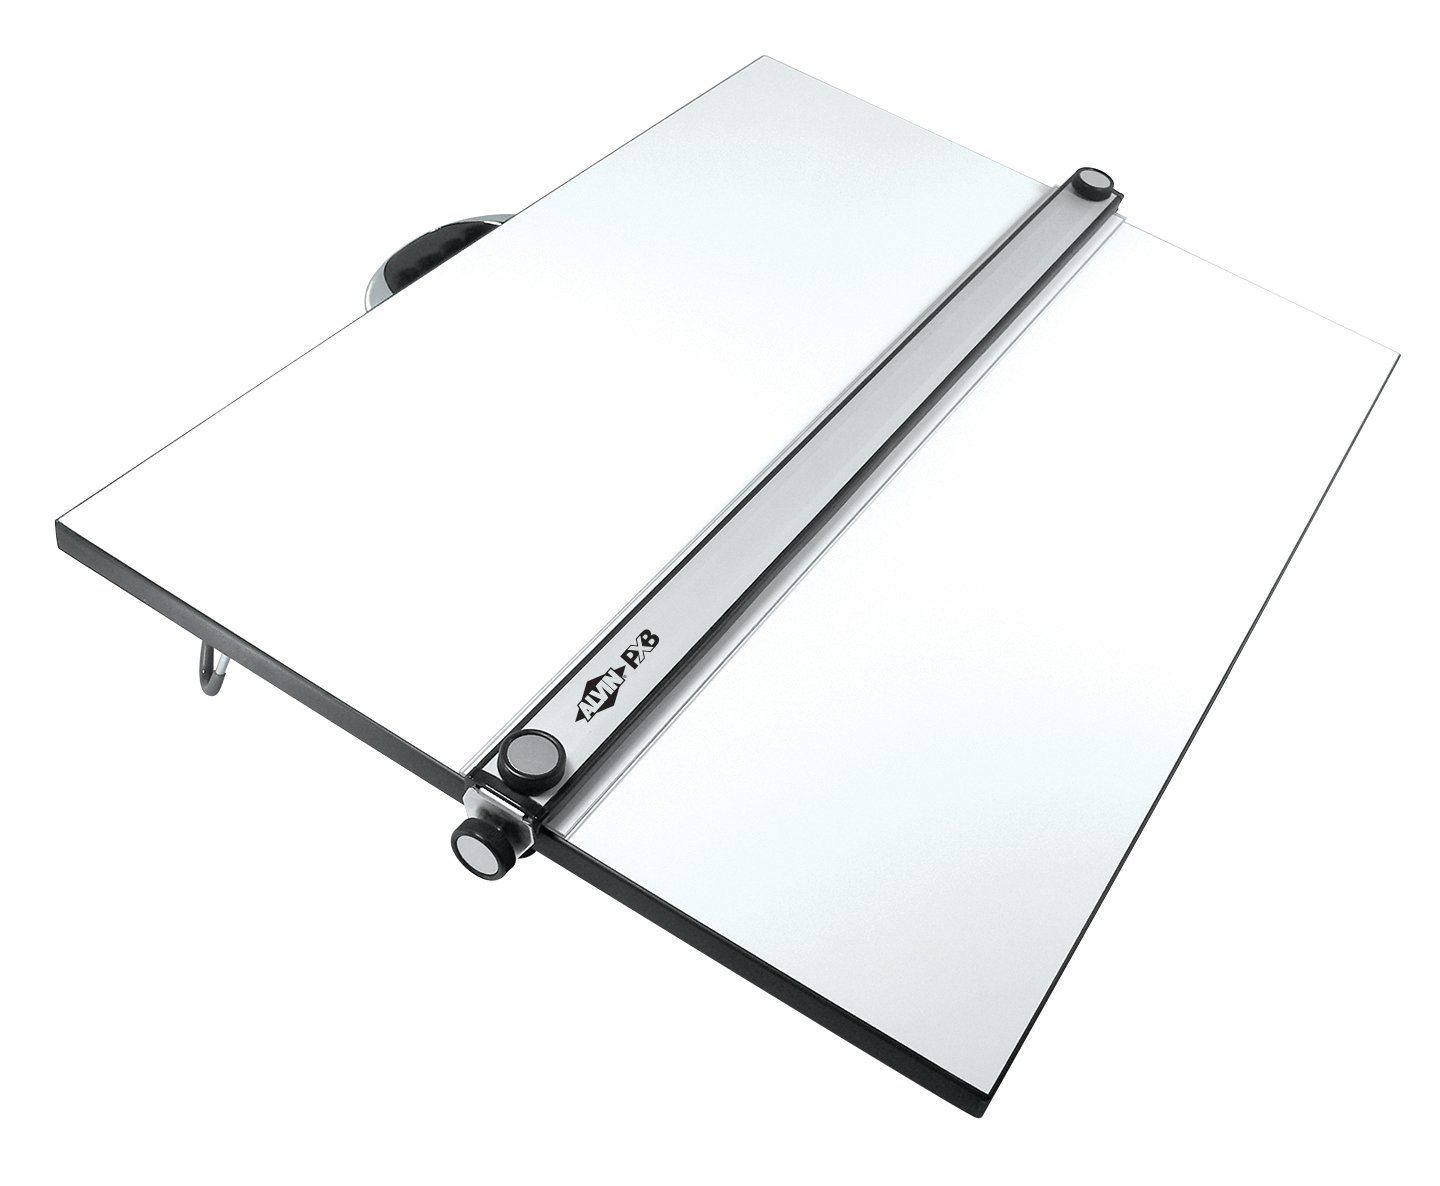 Alvin PXB42 PXB Series Portable Parallel Straightedge Board 30 inches x 42 inches